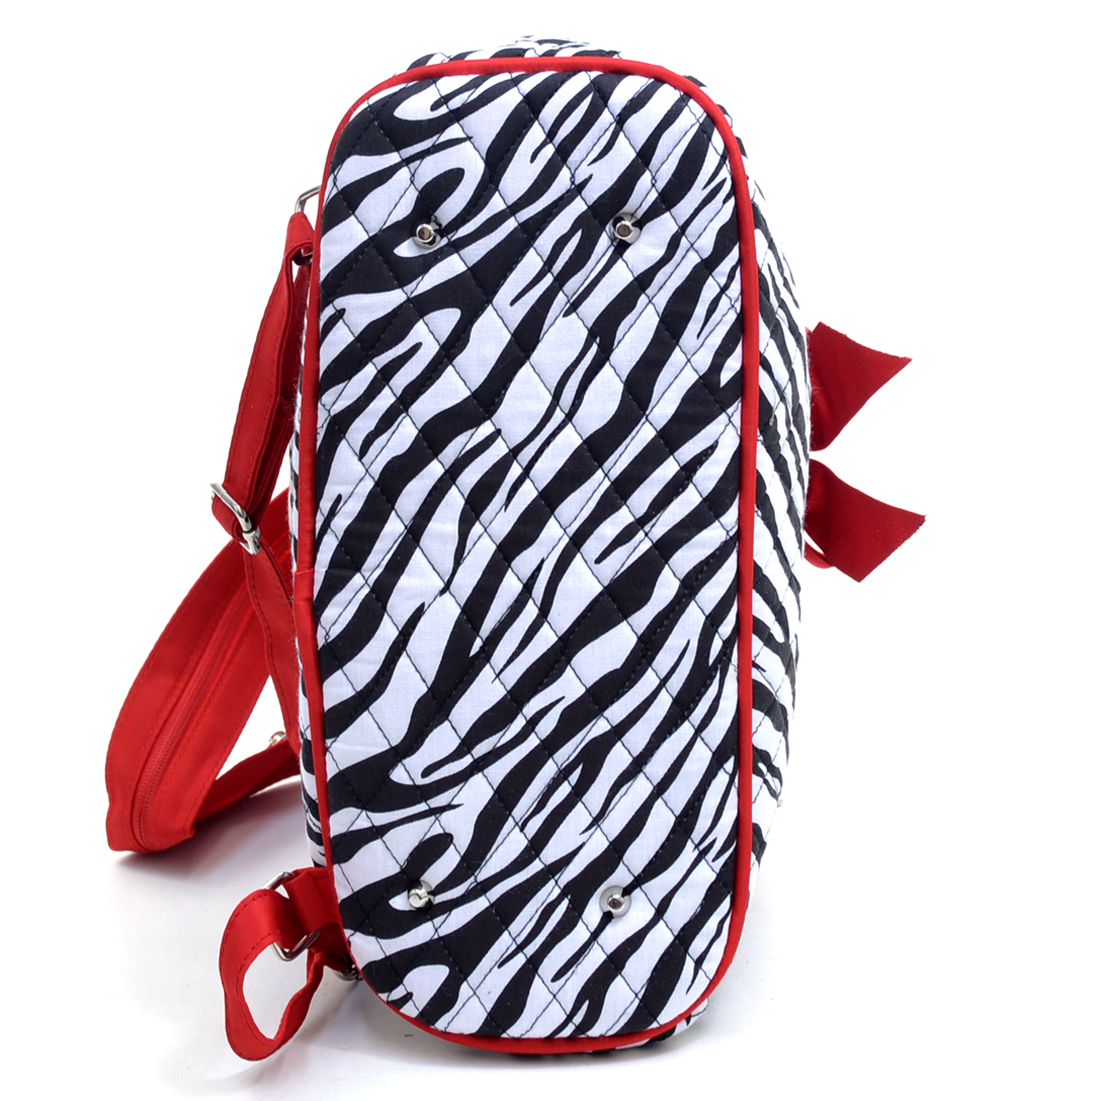 Rosen Blue® Zebra Printed Quilted Backpack